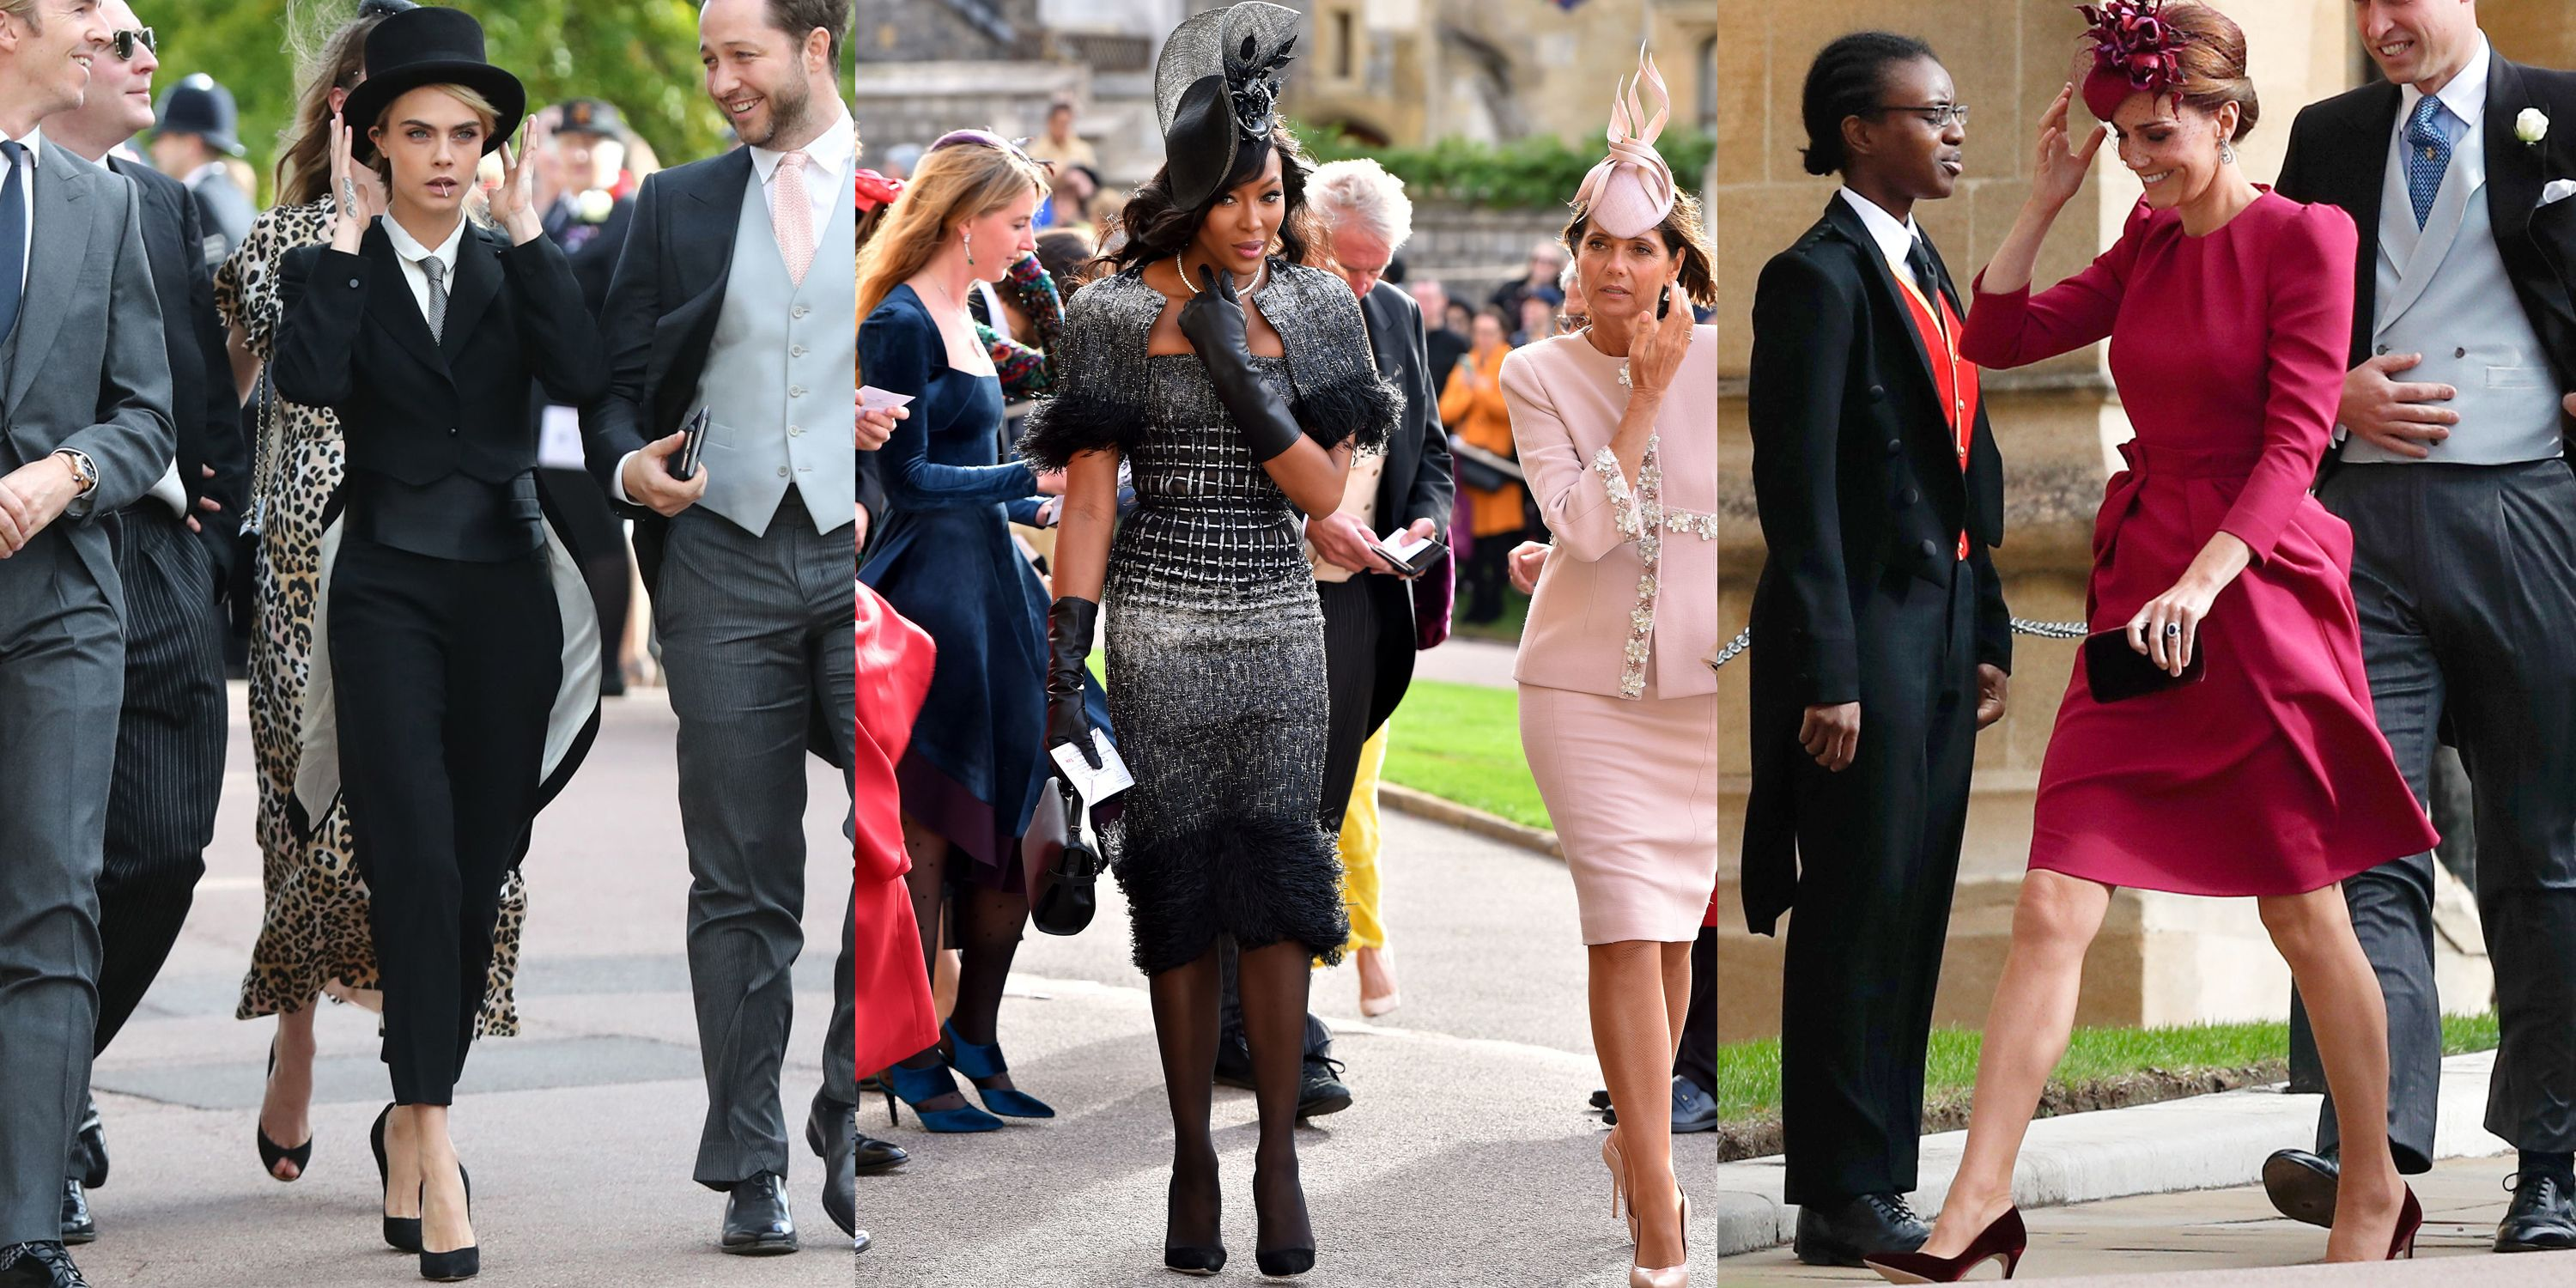 See All the Guests Arriving at Princess Eugenie and Jack Brooksbank's Wedding